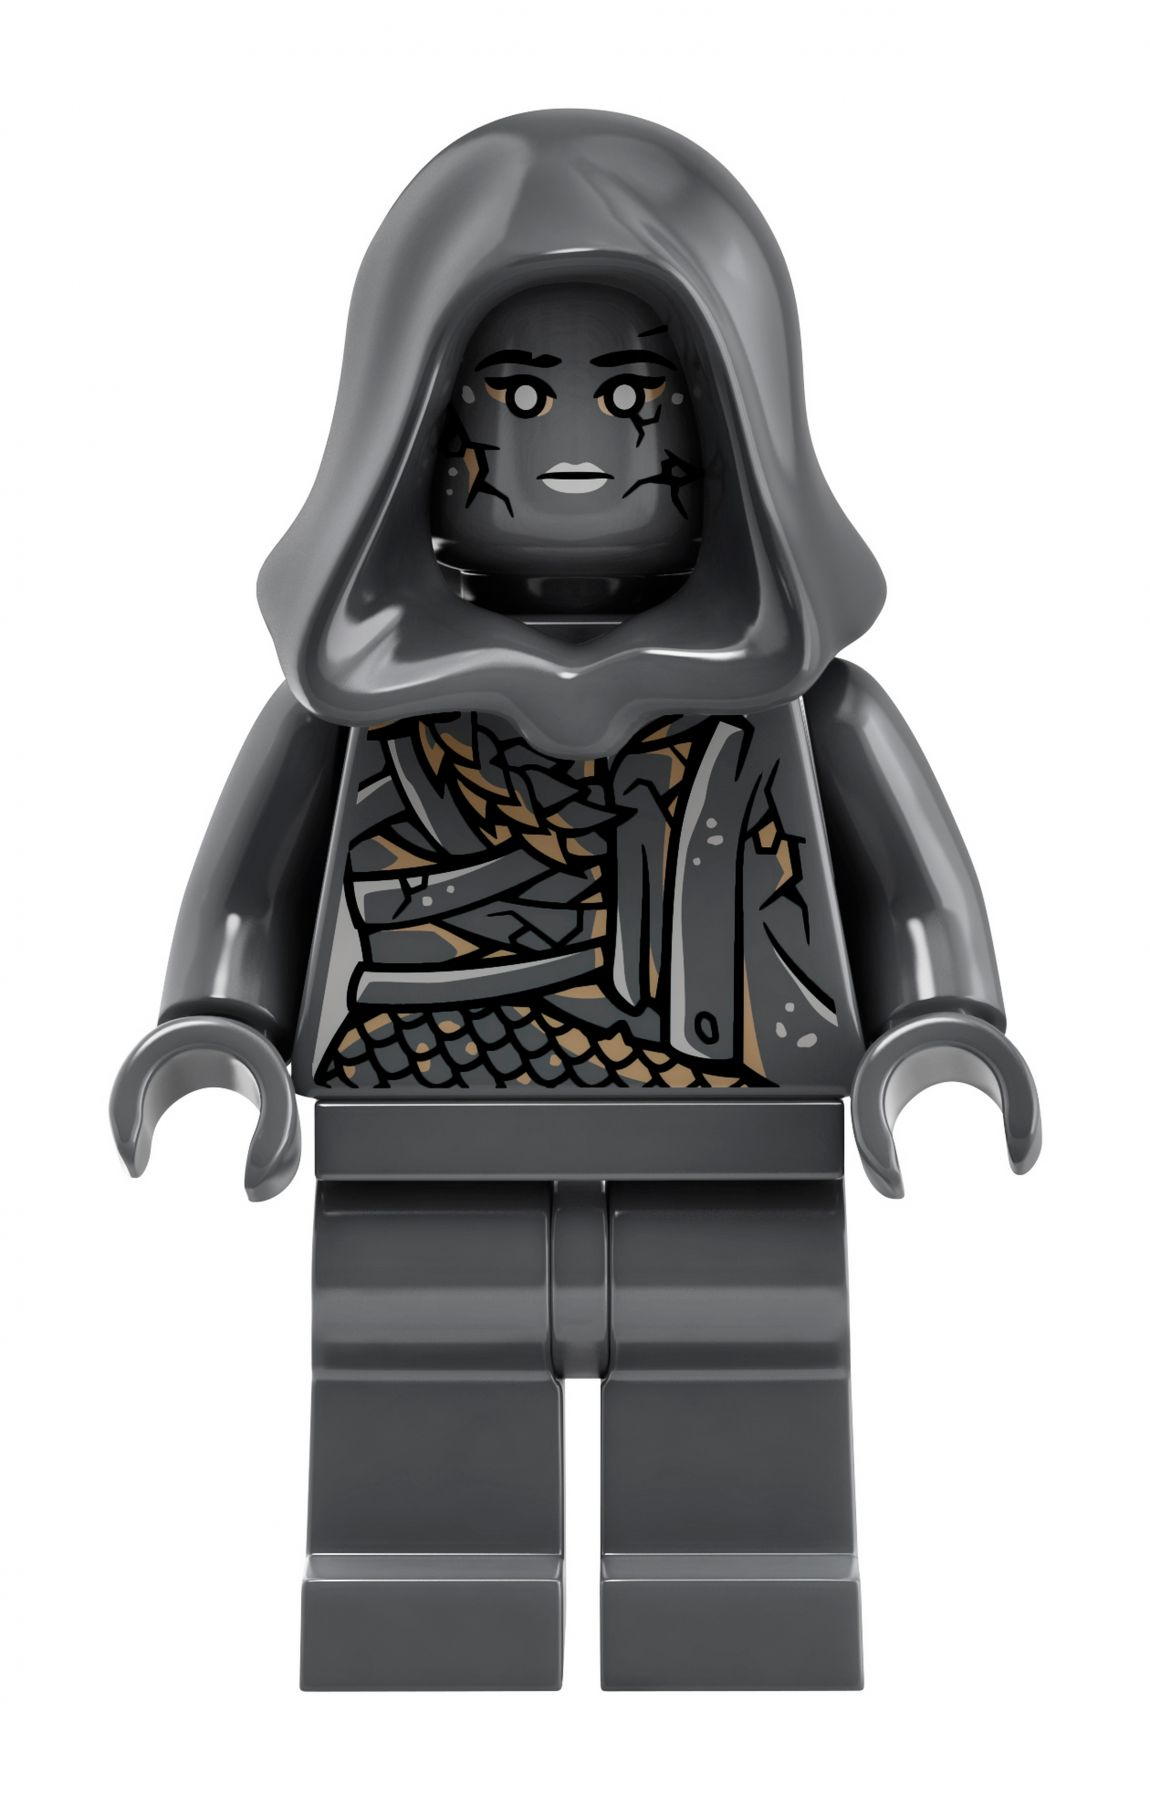 LEGO Advanced Models 71042 Silent Mary LEGO_71042_alt9.jpg